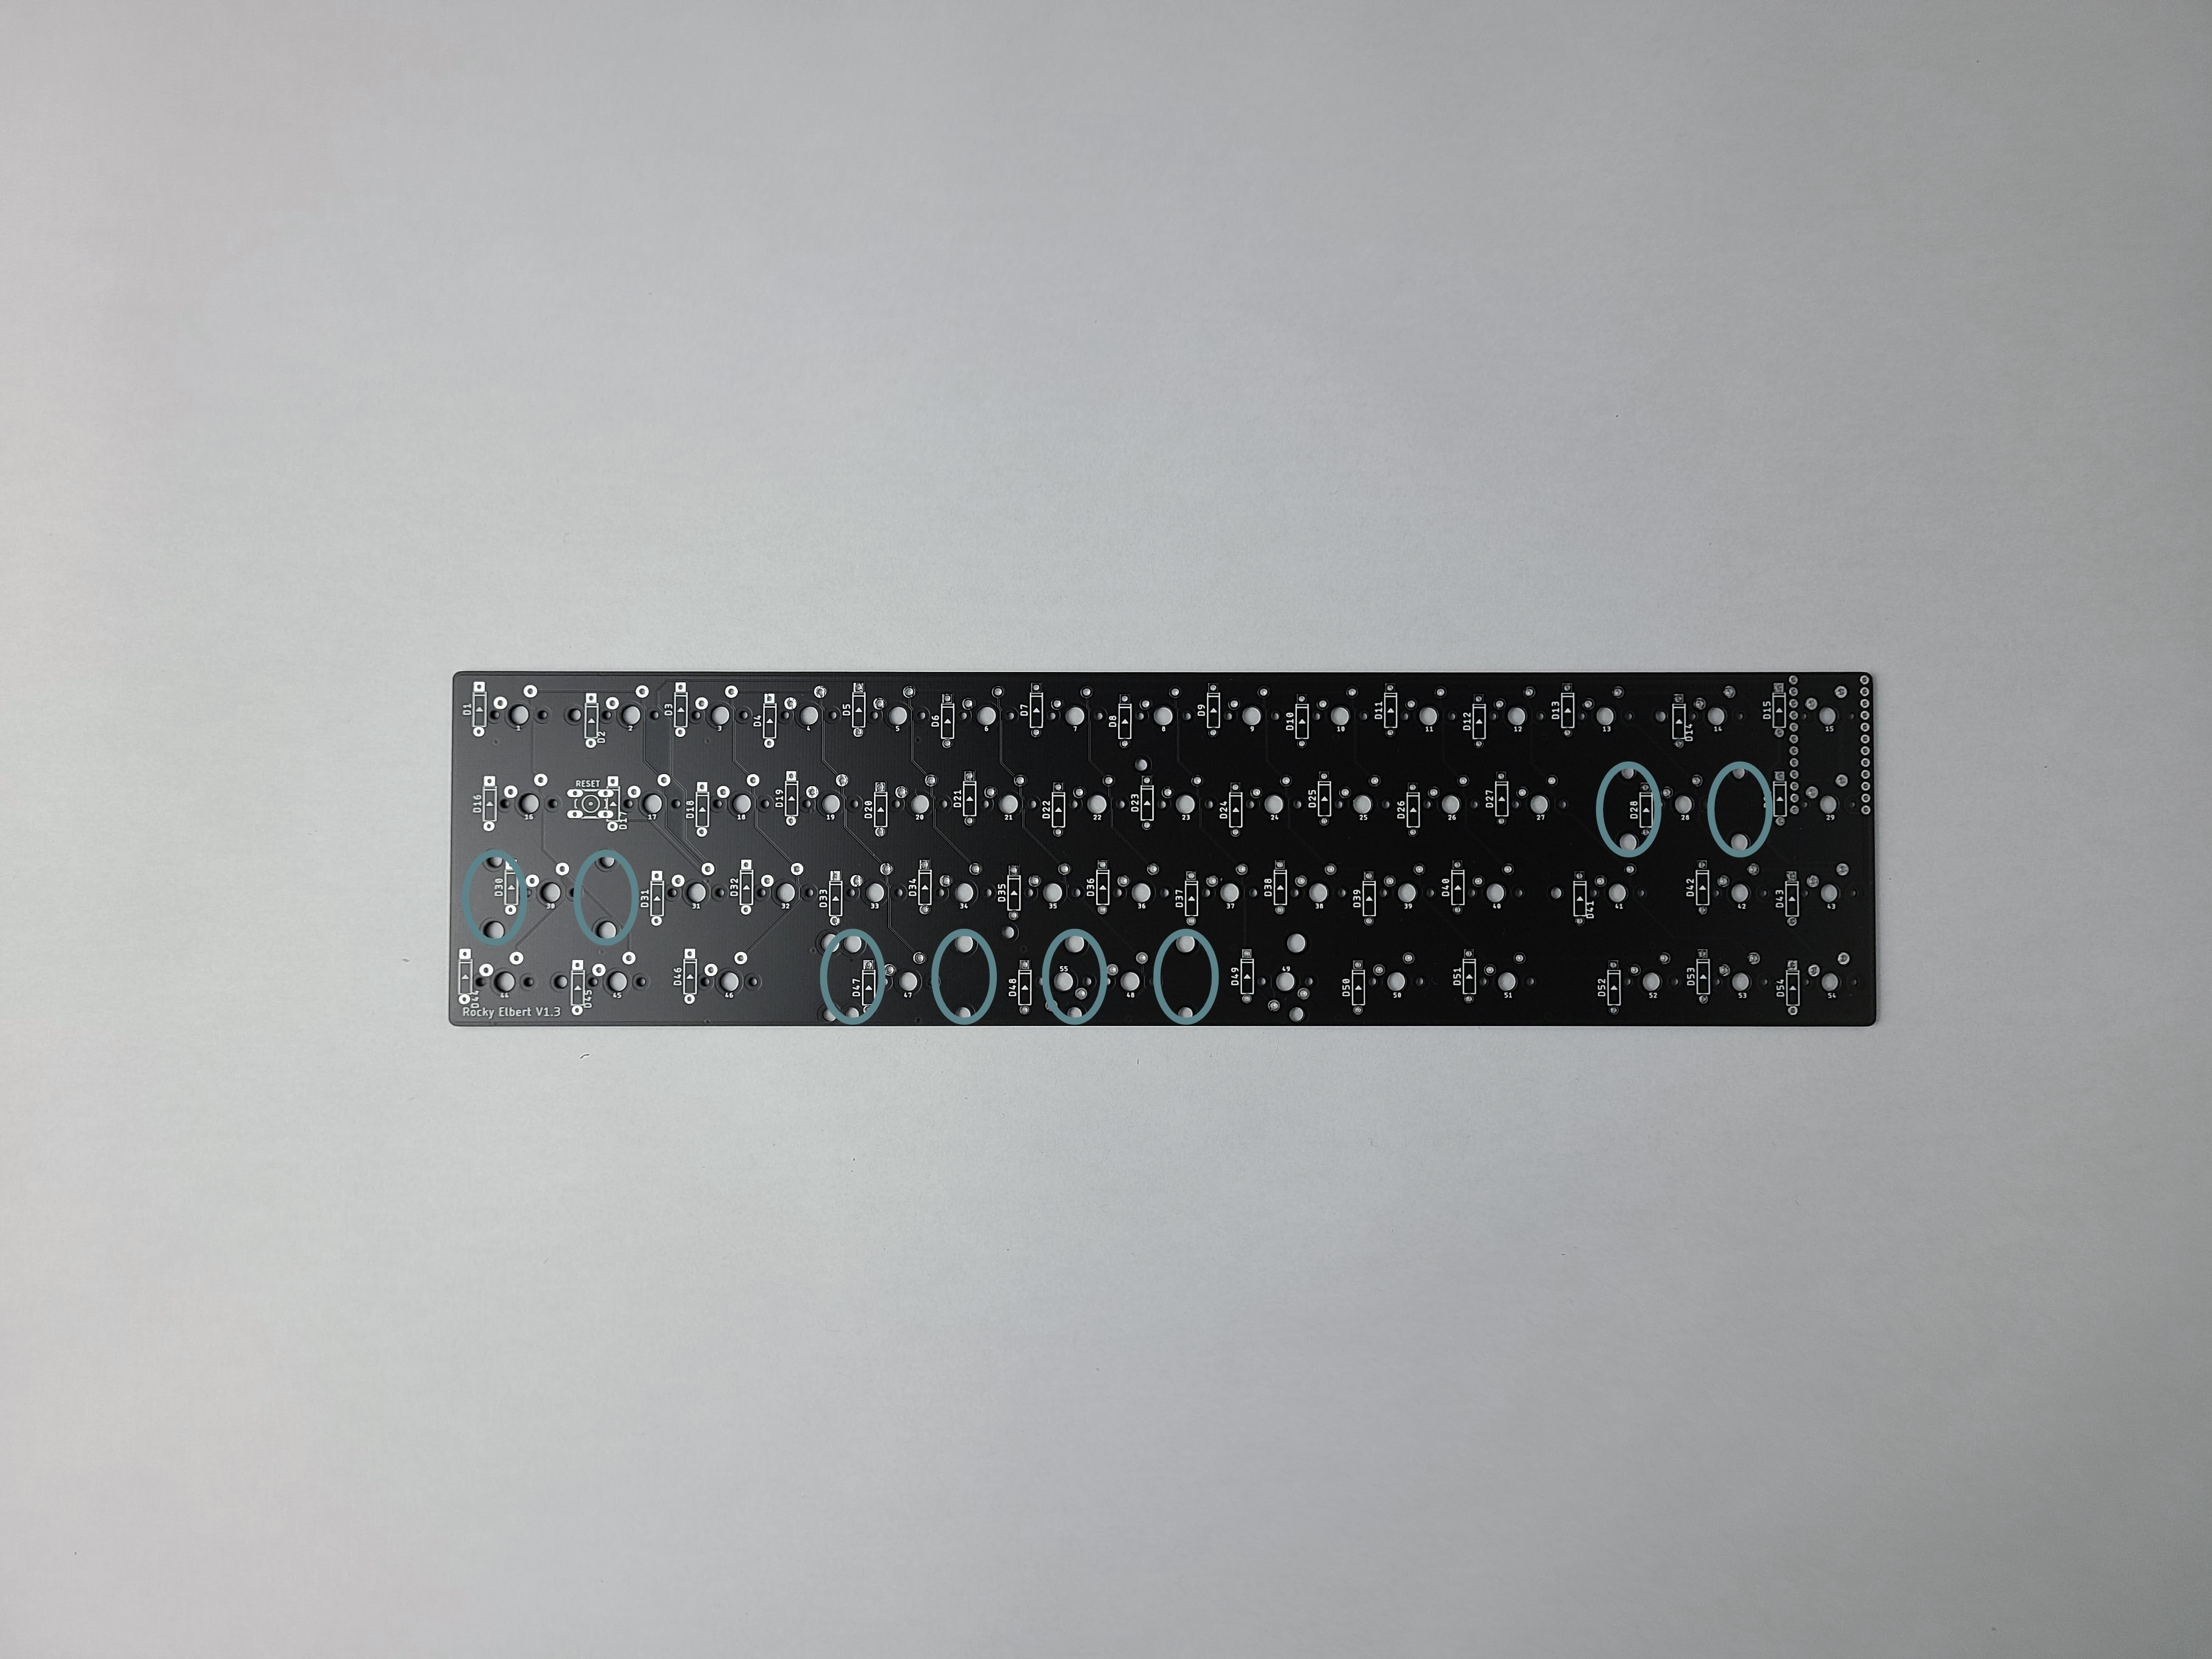 PCB with stabilizer cutouts for switches 28, 30, 47, and 48 circled